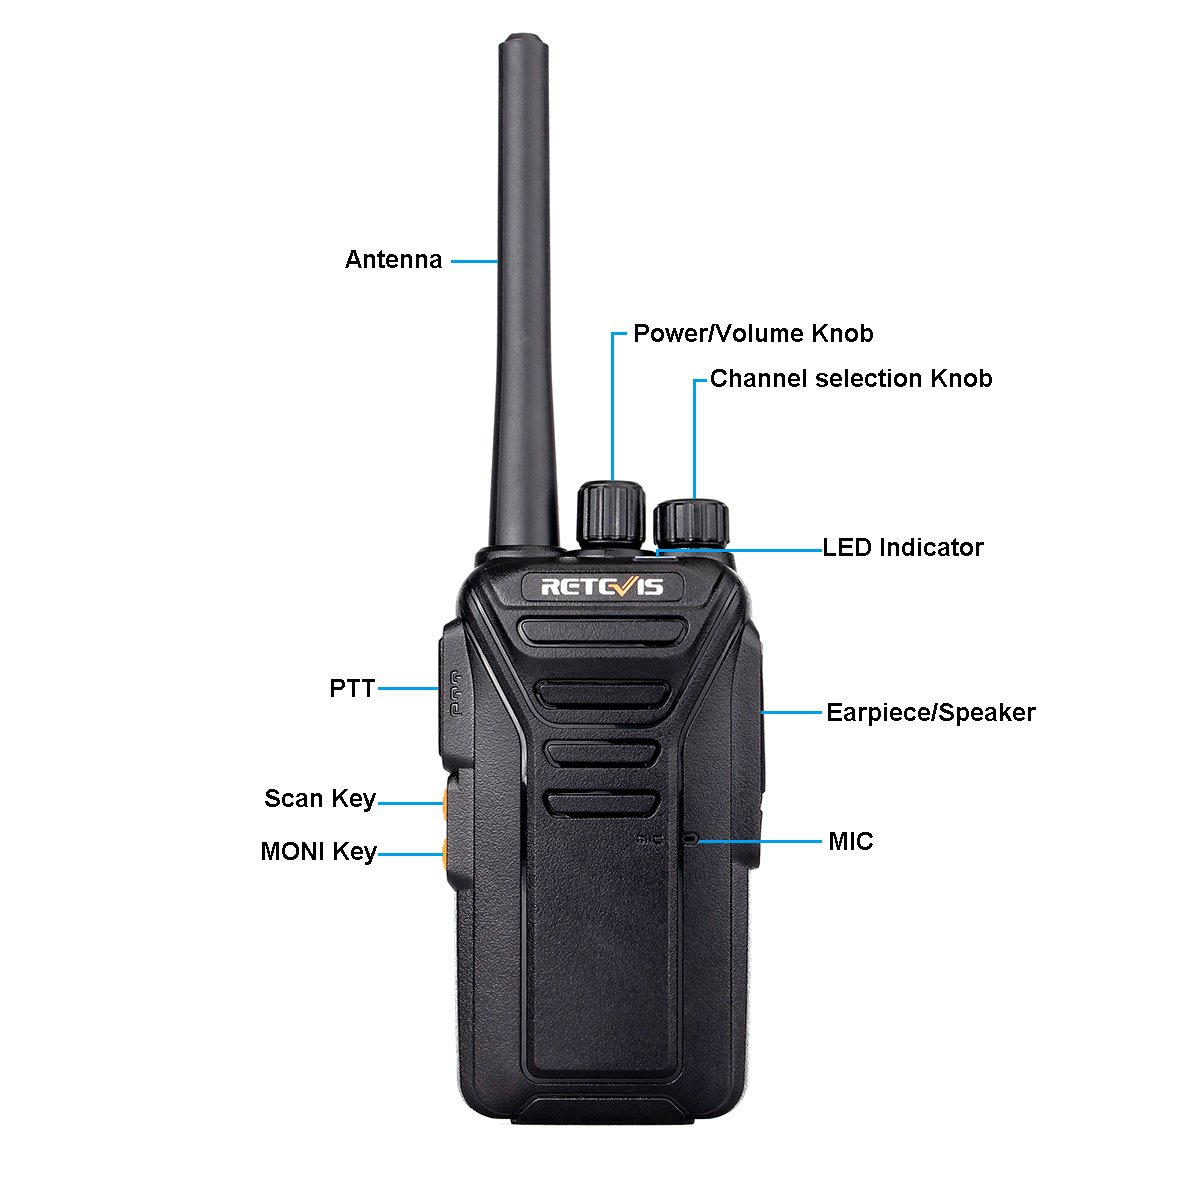 FA9133MX2-C9034AX2-C9003AX2 Retevis RT27V MURS Walkie Talkie VHF Rechargeable 5 Channel Two Way Radios with Covert Air Acoustic Earpiece Black, 2 Pack